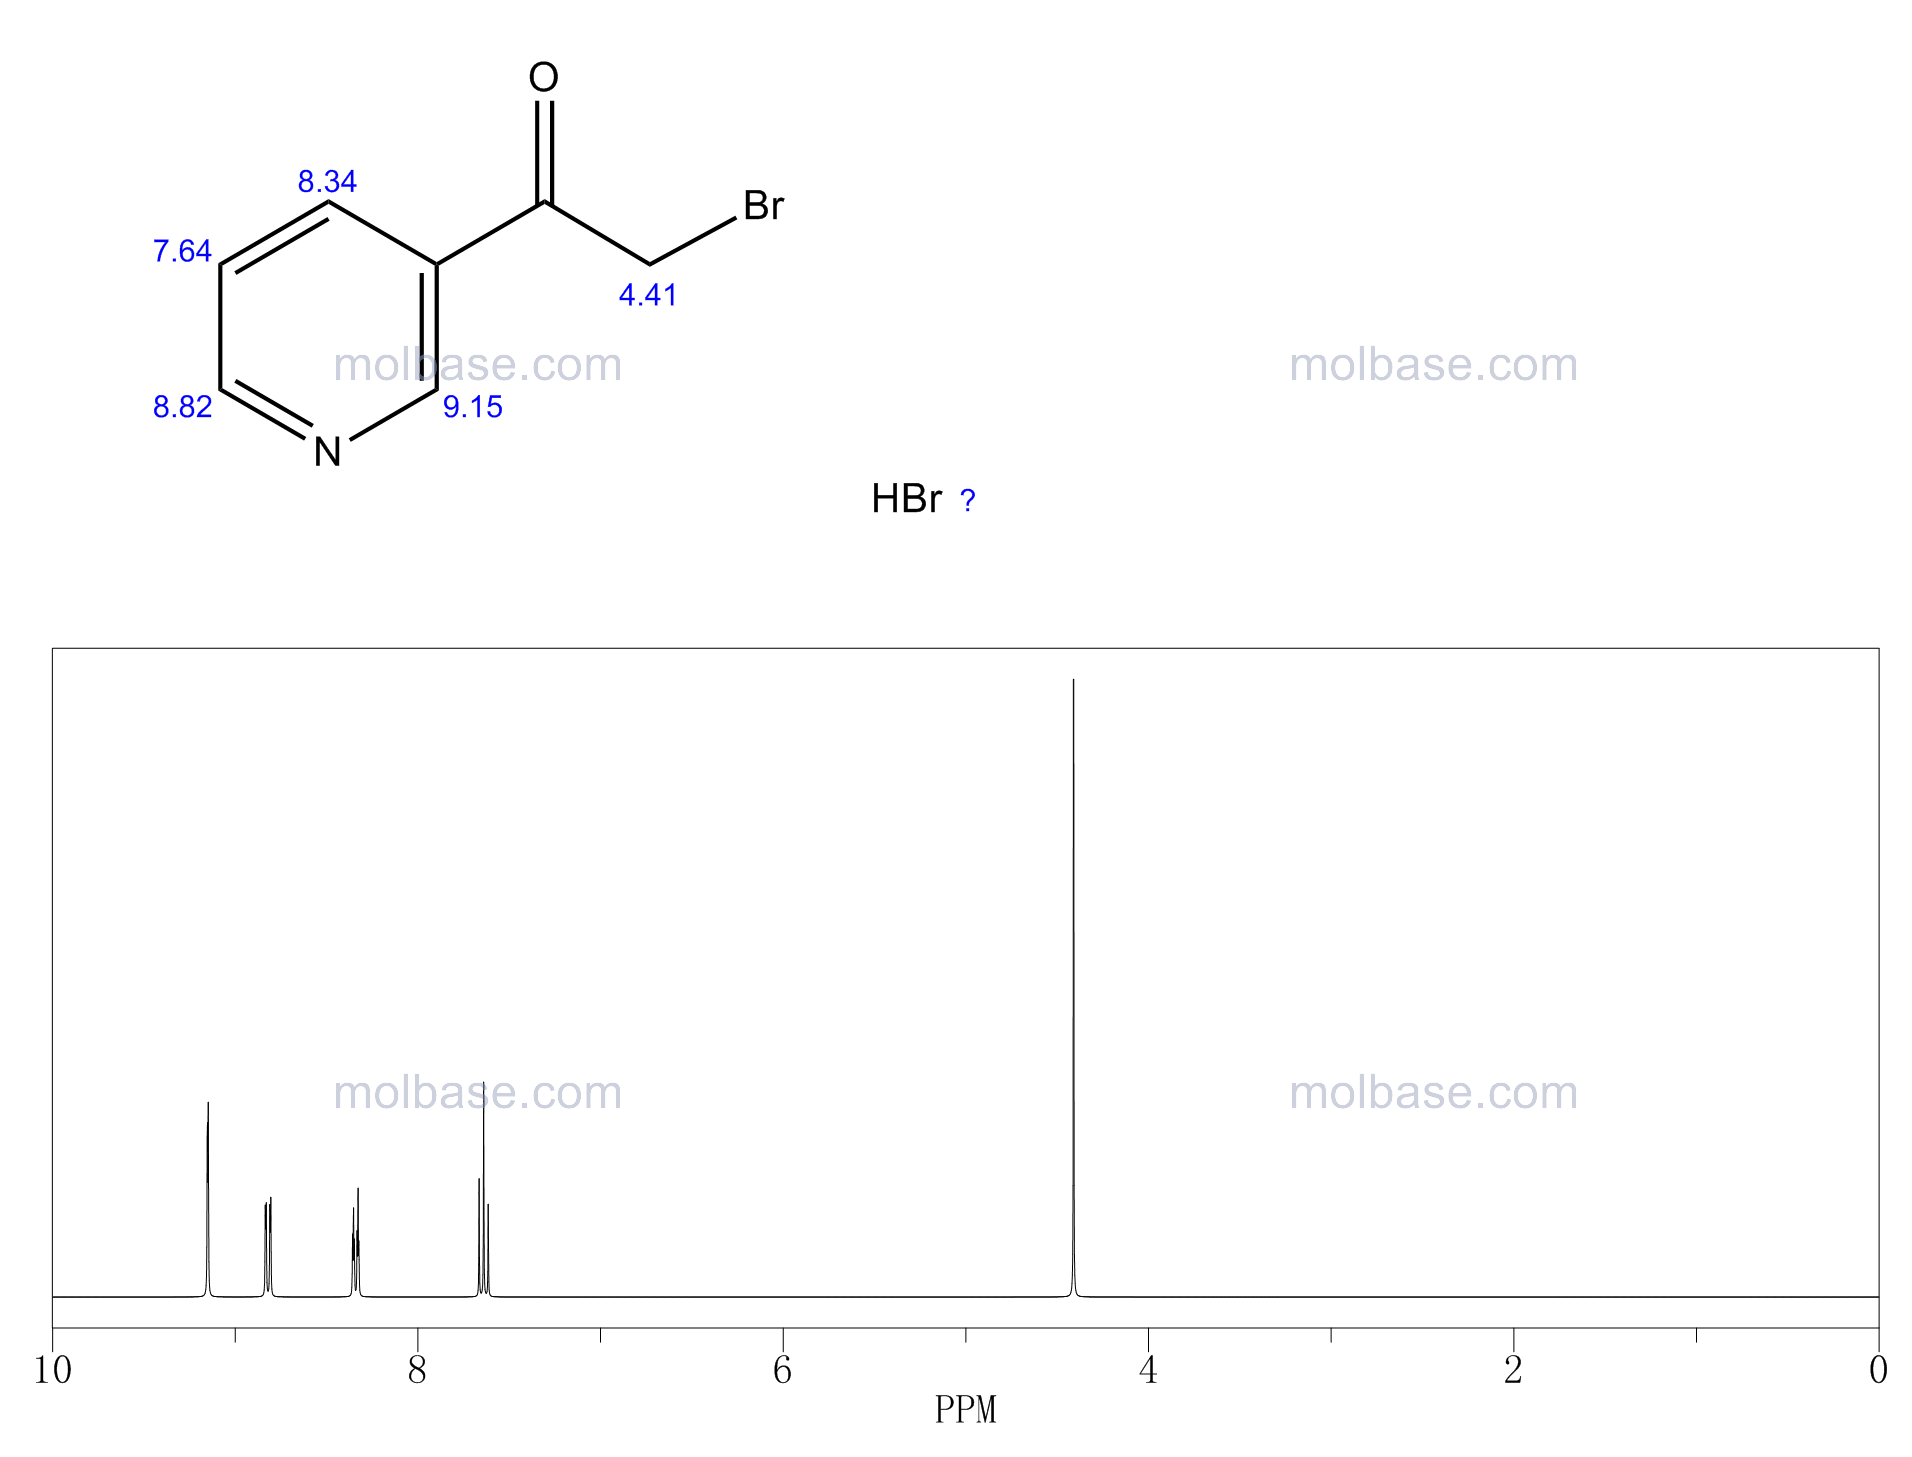 2-bromo-1-pyridin-3-ylethanone,hydrobromide NMR spectra analysis, Chemical CAS NO. 17694-68-7 NMR spectral analysis, 2-bromo-1-pyridin-3-ylethanone,hydrobromide C-NMR spectrum